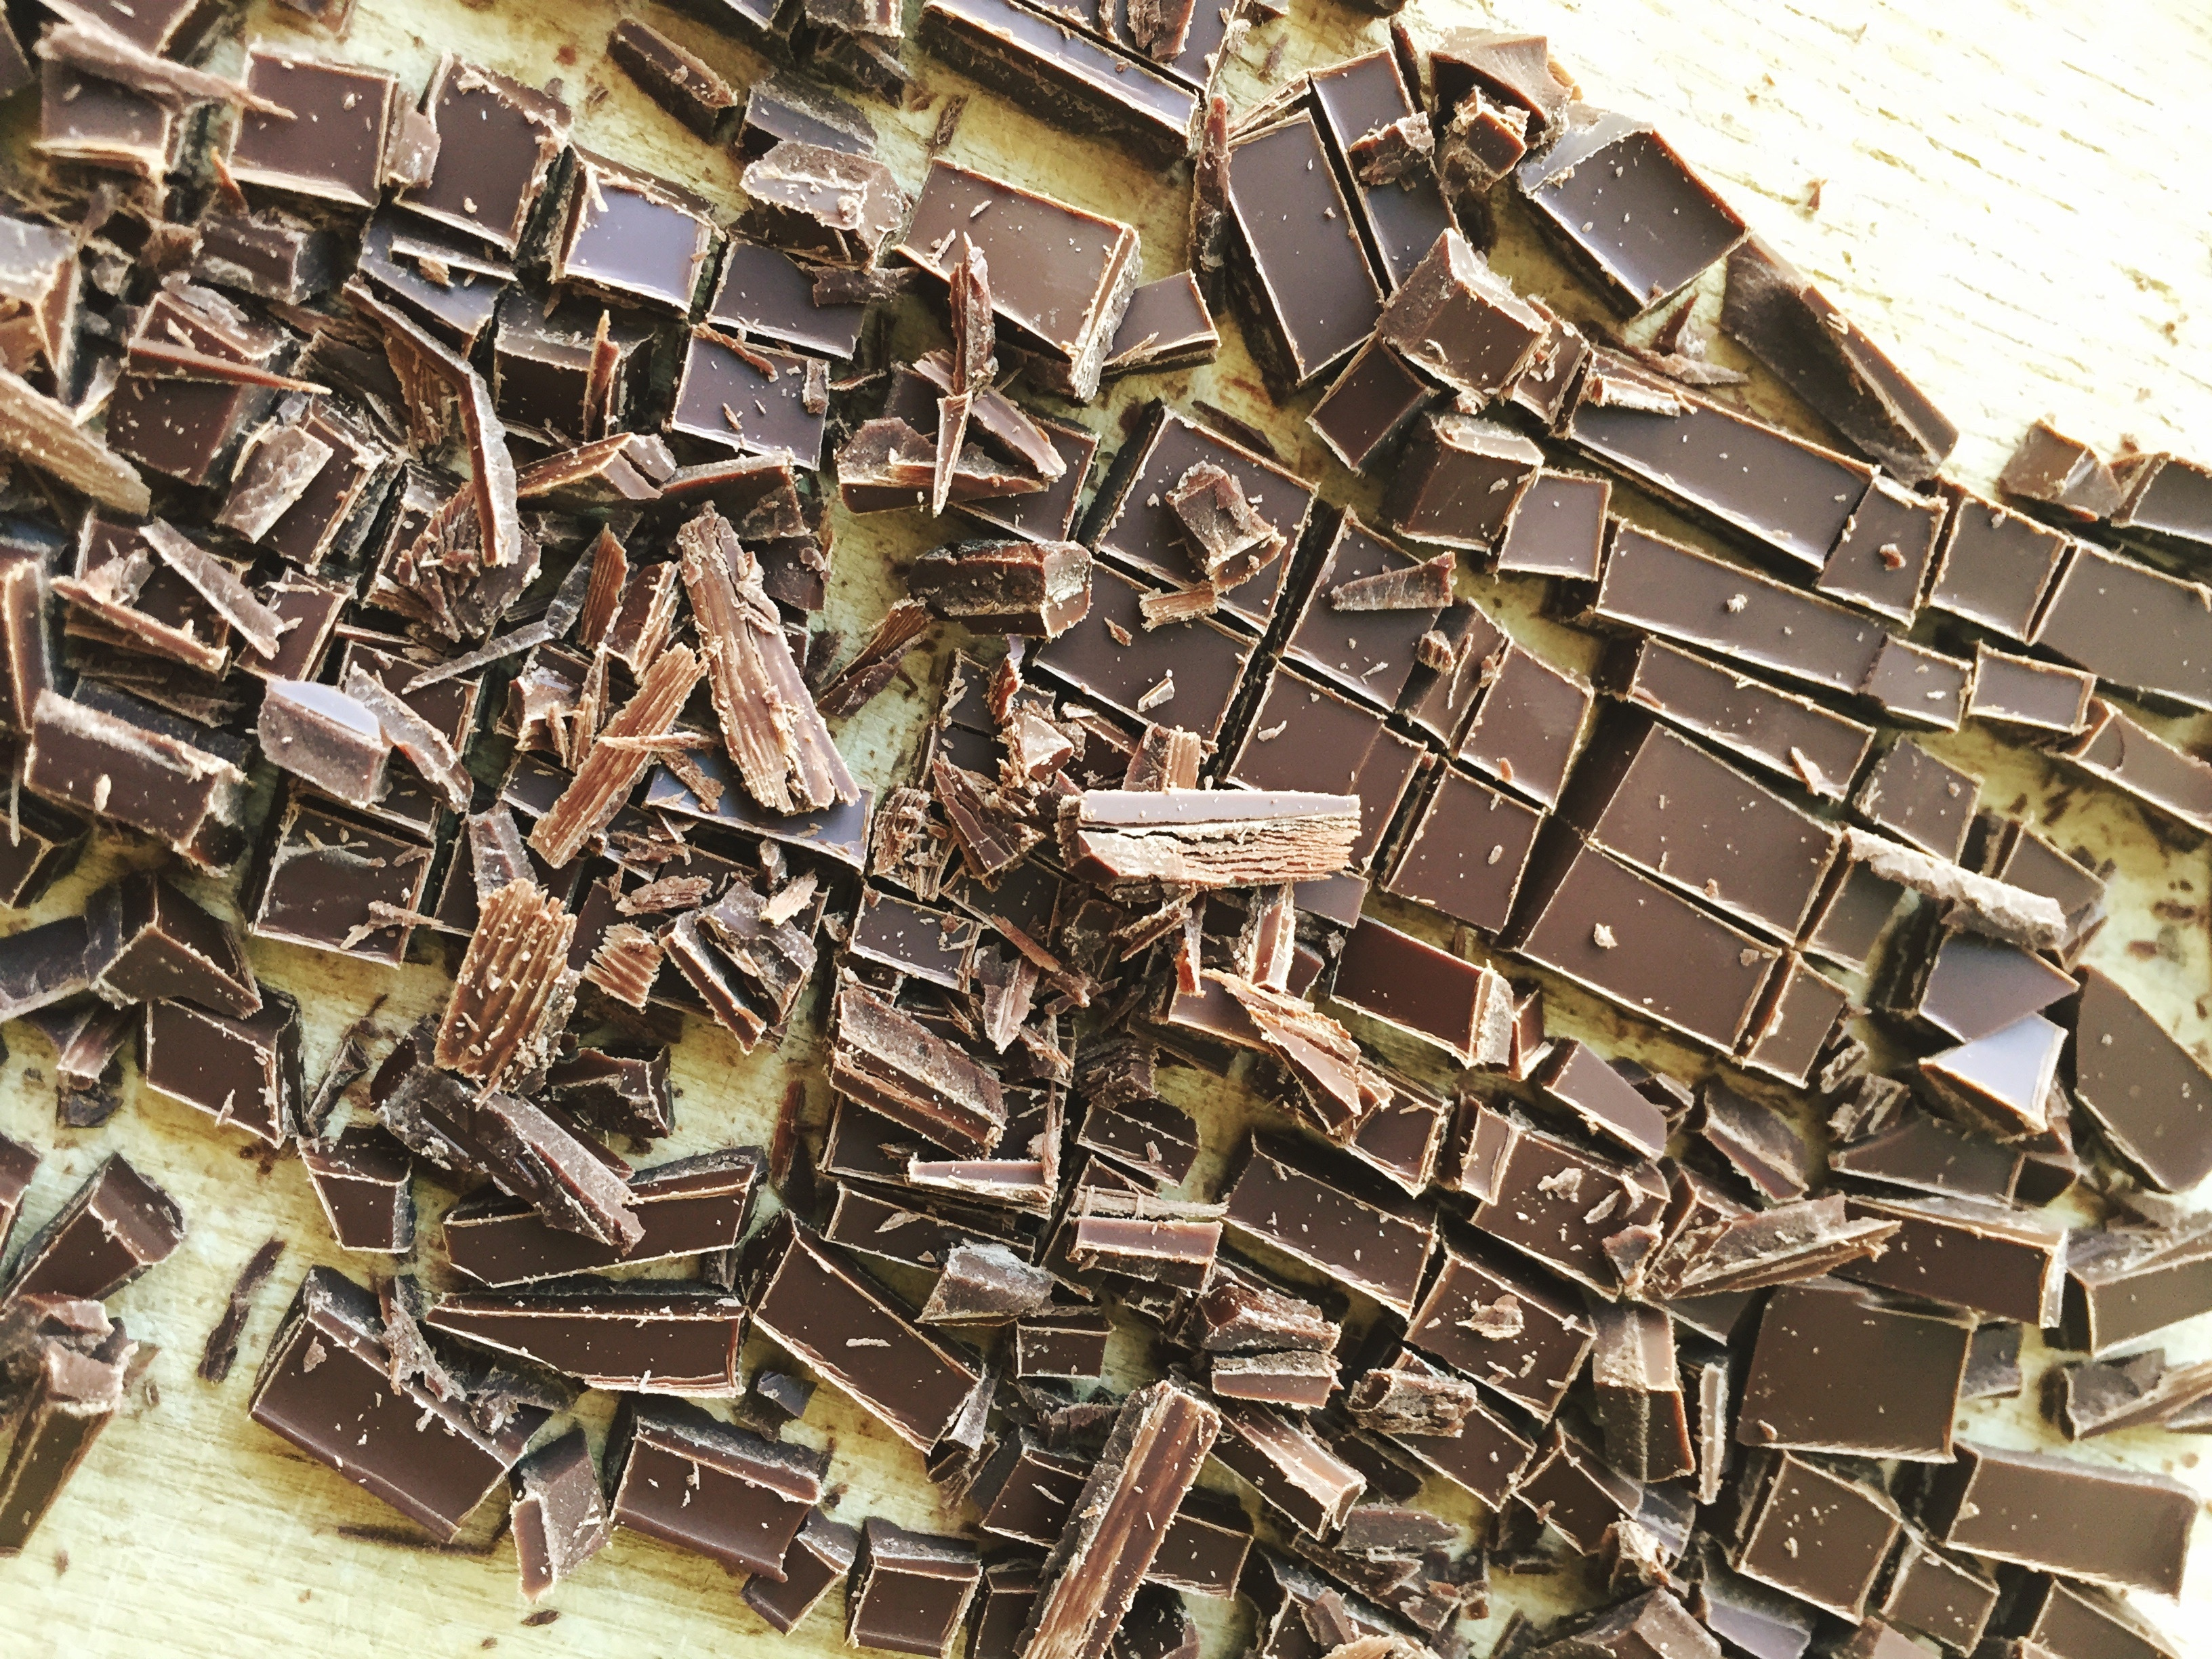 Directly Above View Of Scattered Chocolate On Table